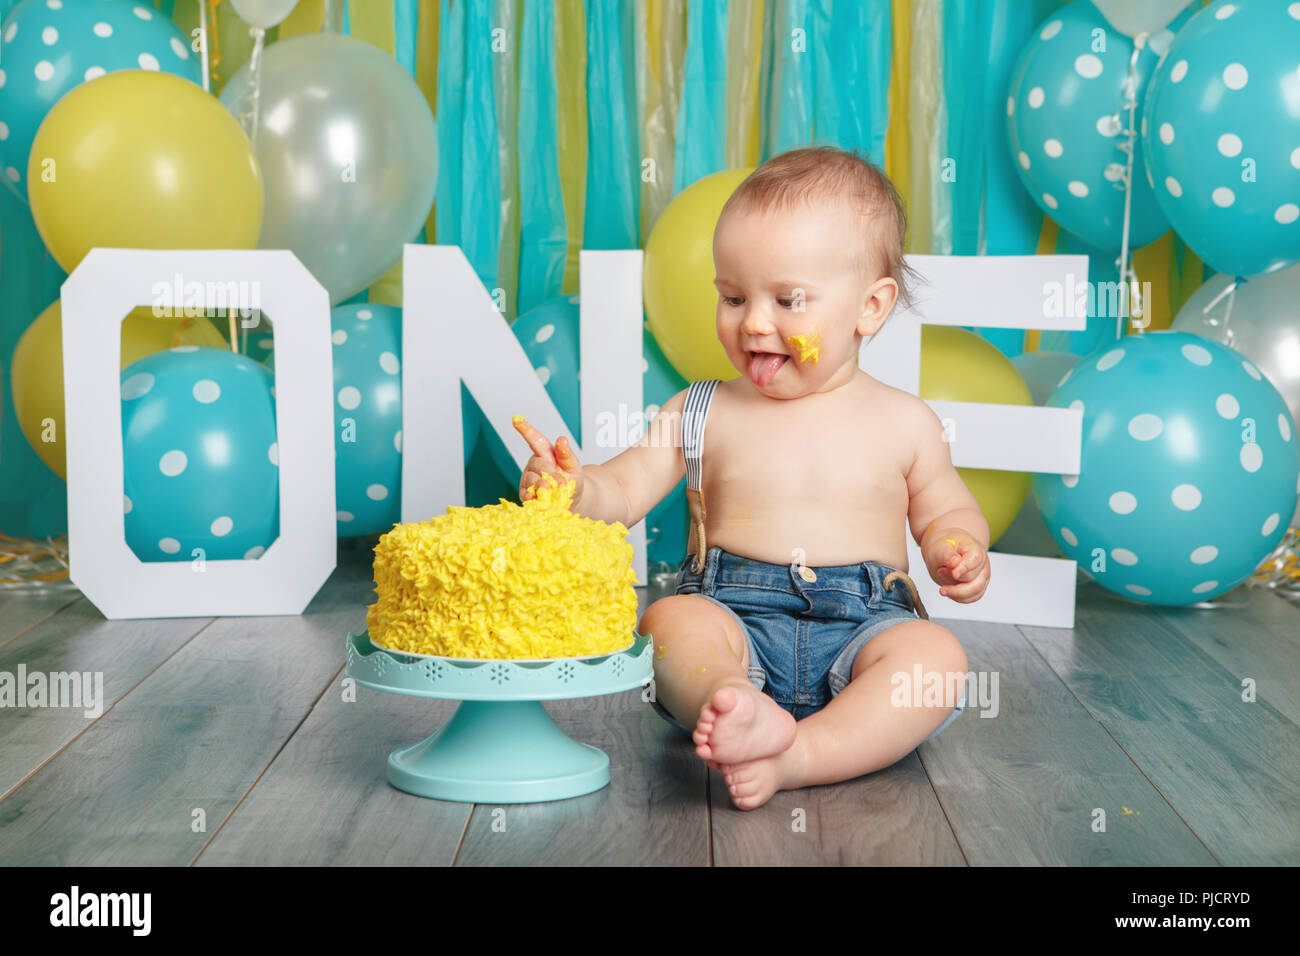 Portrait Of Cute Adorable Caucasian Baby Boy In Jeans Pants Celebrating His First Birthday Cake Smash Concept Child Kid Sitting On Floor Studio E